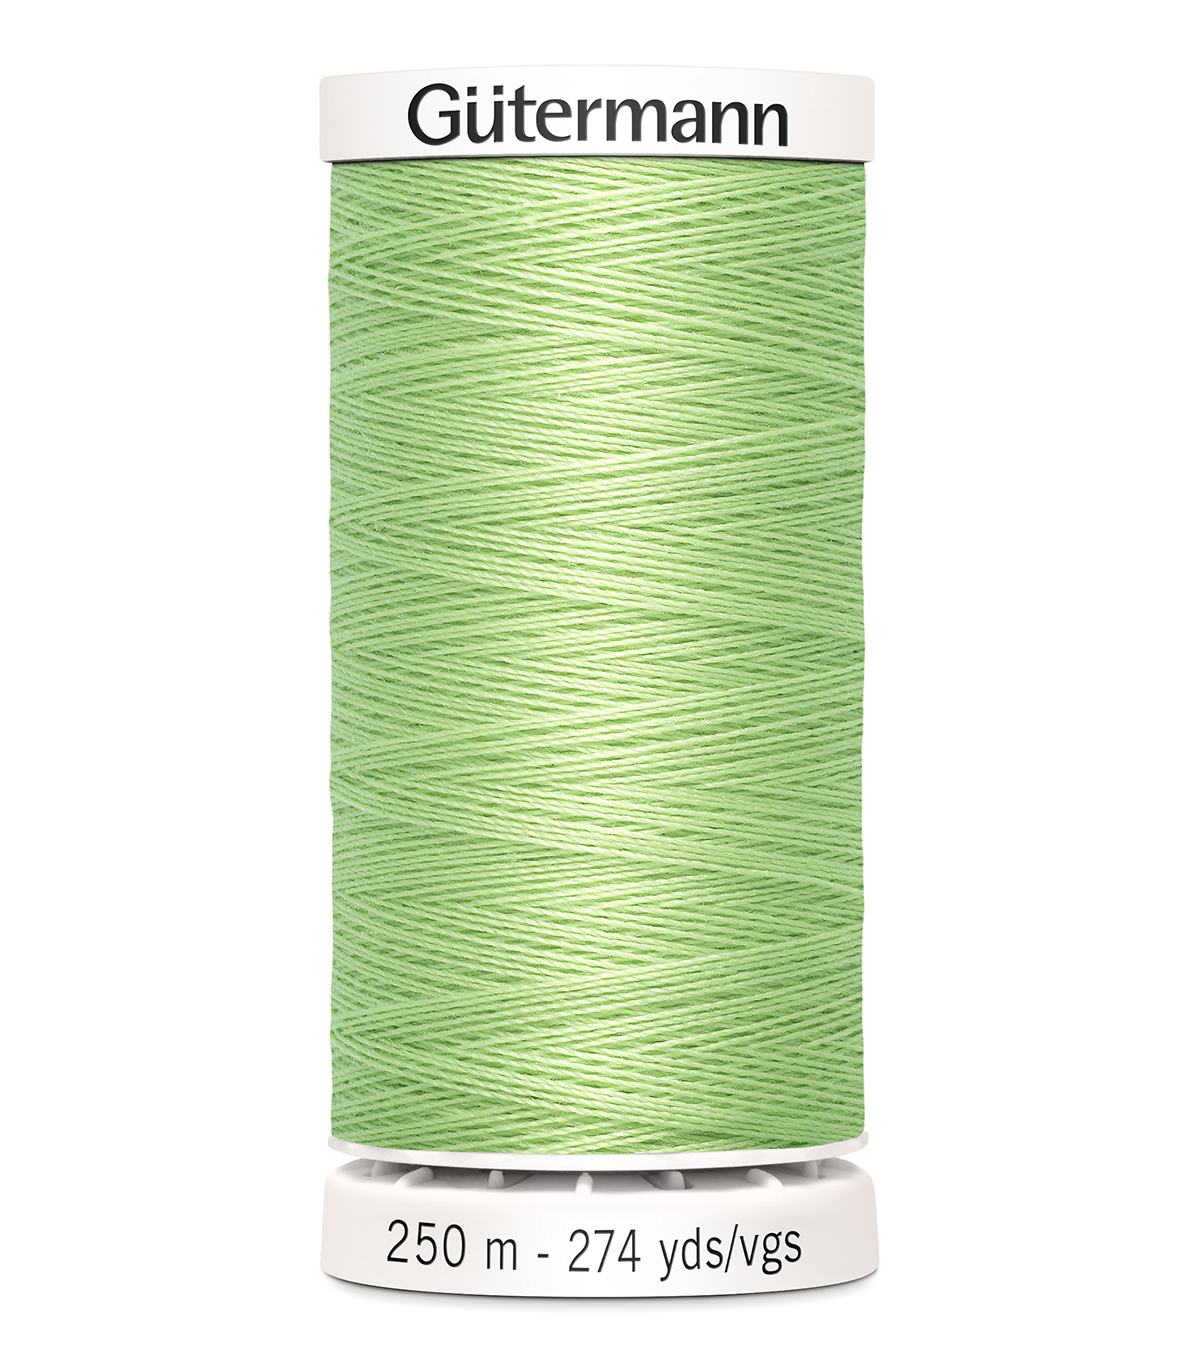 Gutermann Sew-All Thread 273Yds-(600 & 700 series) Cool Tones , Light Green 704